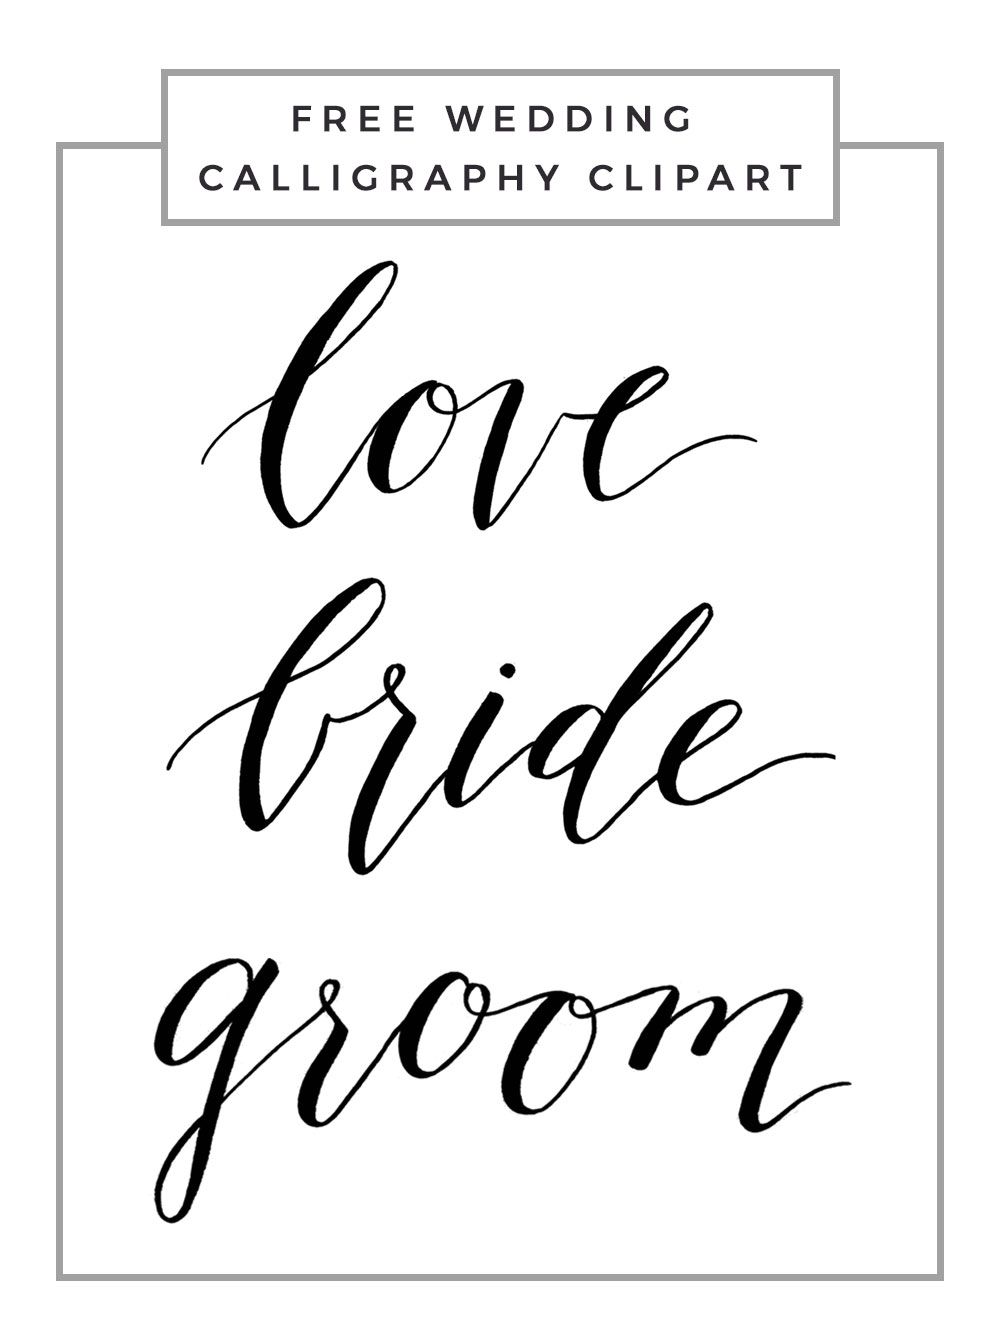 Owl Ink - 3 Free Wedding Calligraphy Downloads